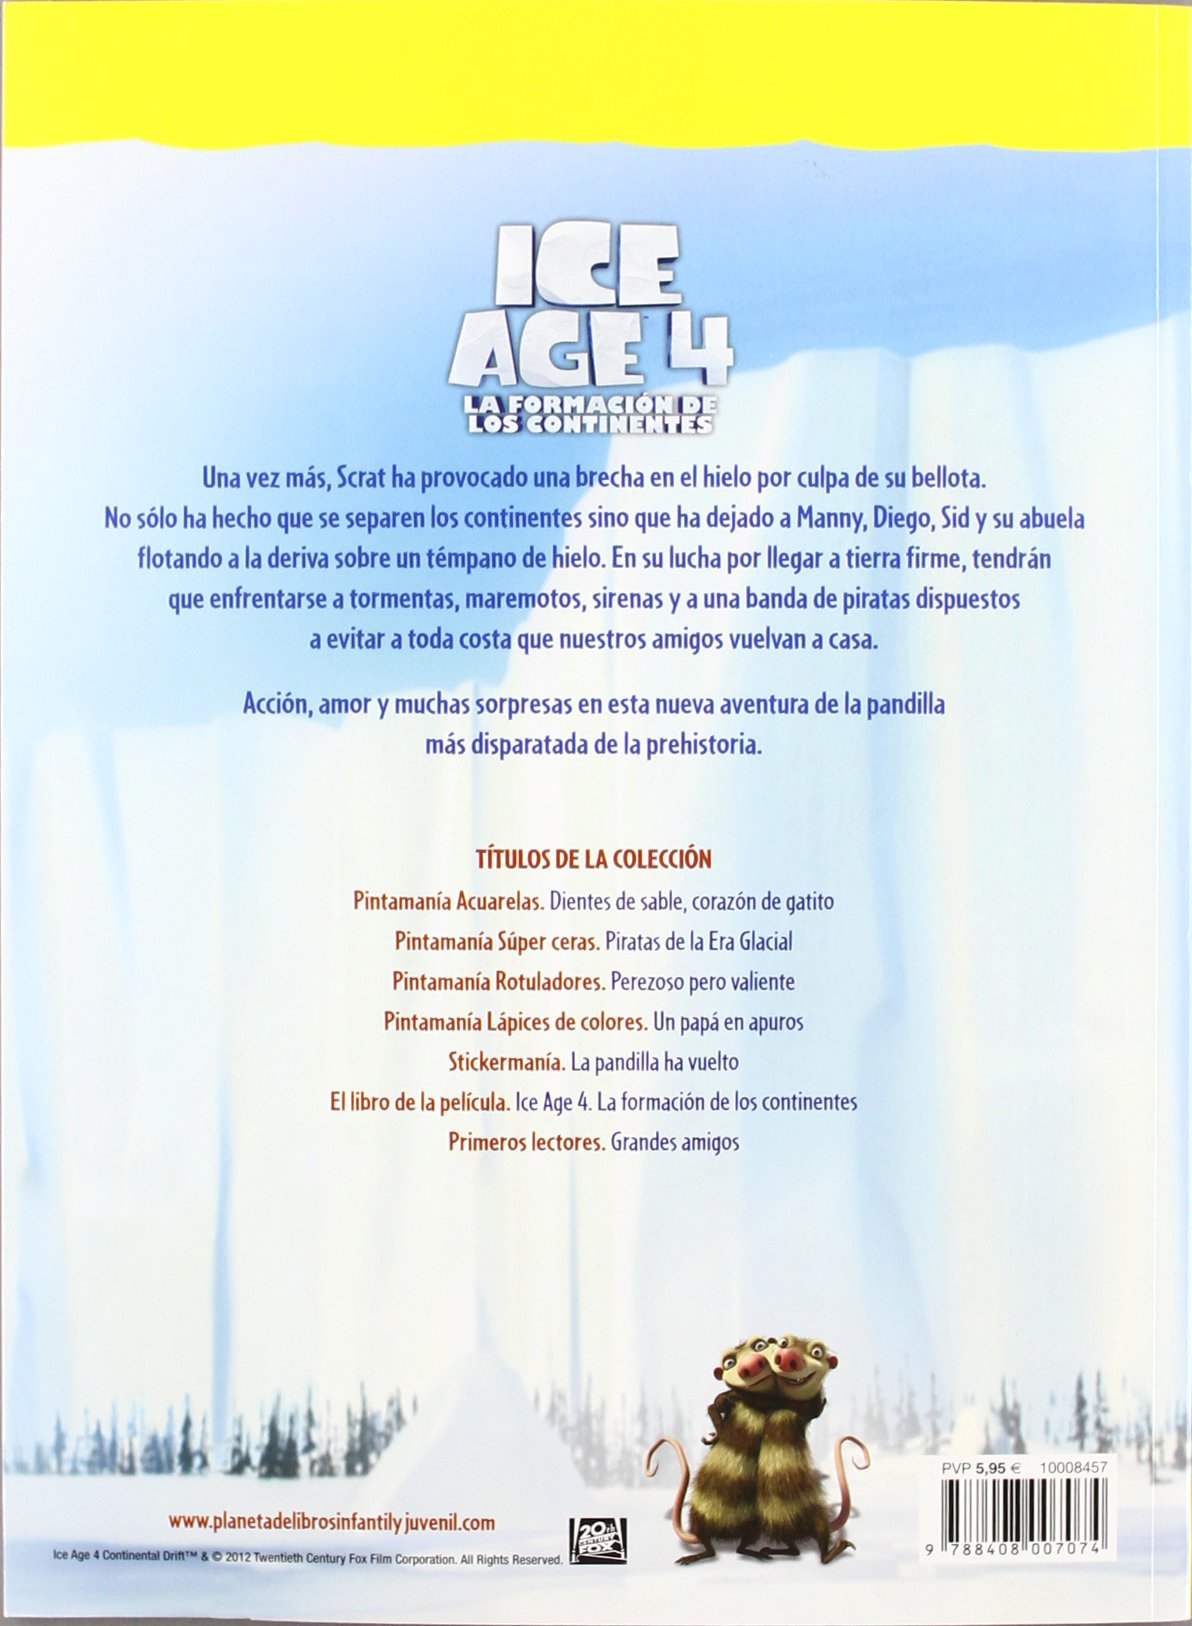 El libro de la película: Ice Age 4: 9788408007074: Amazon.com: Books